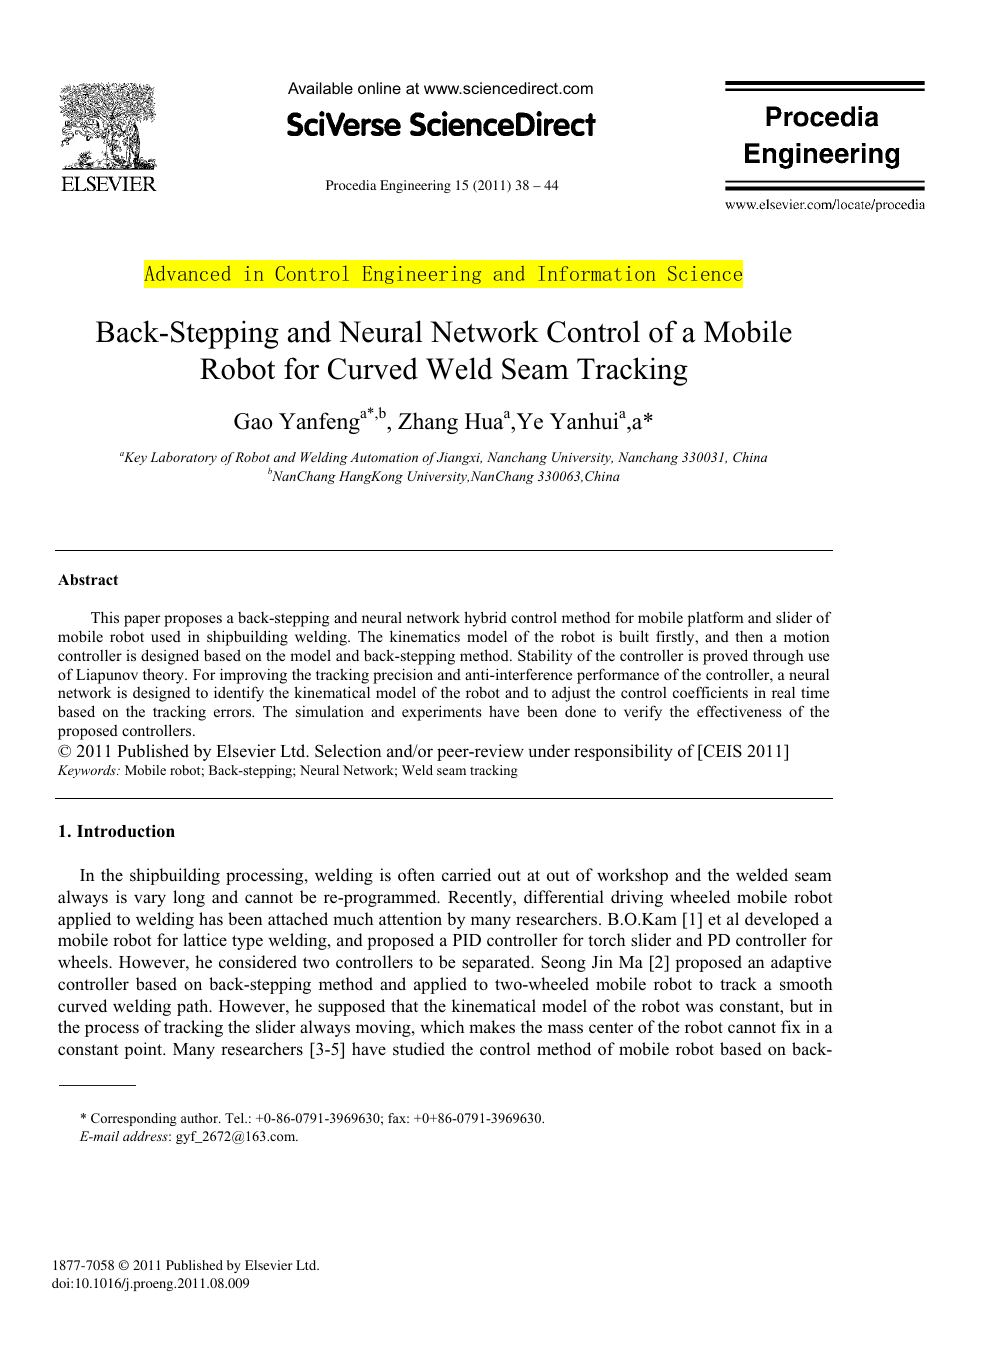 Back-Stepping and Neural Network Control of a Mobile Robot